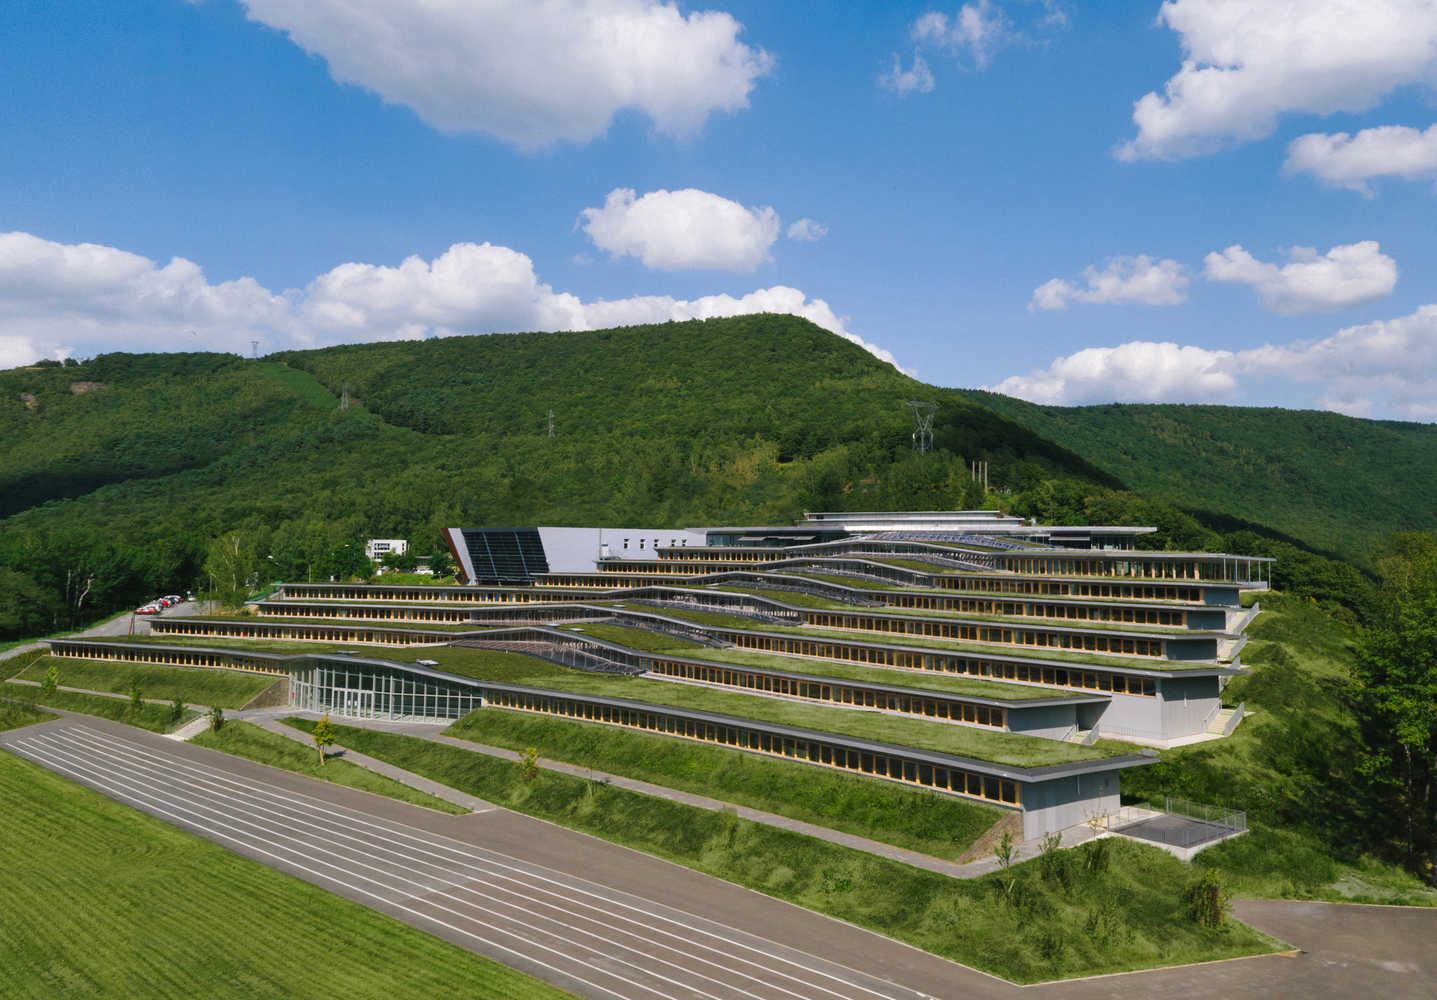 Incredible green-roofed school blends into the mountain landscape